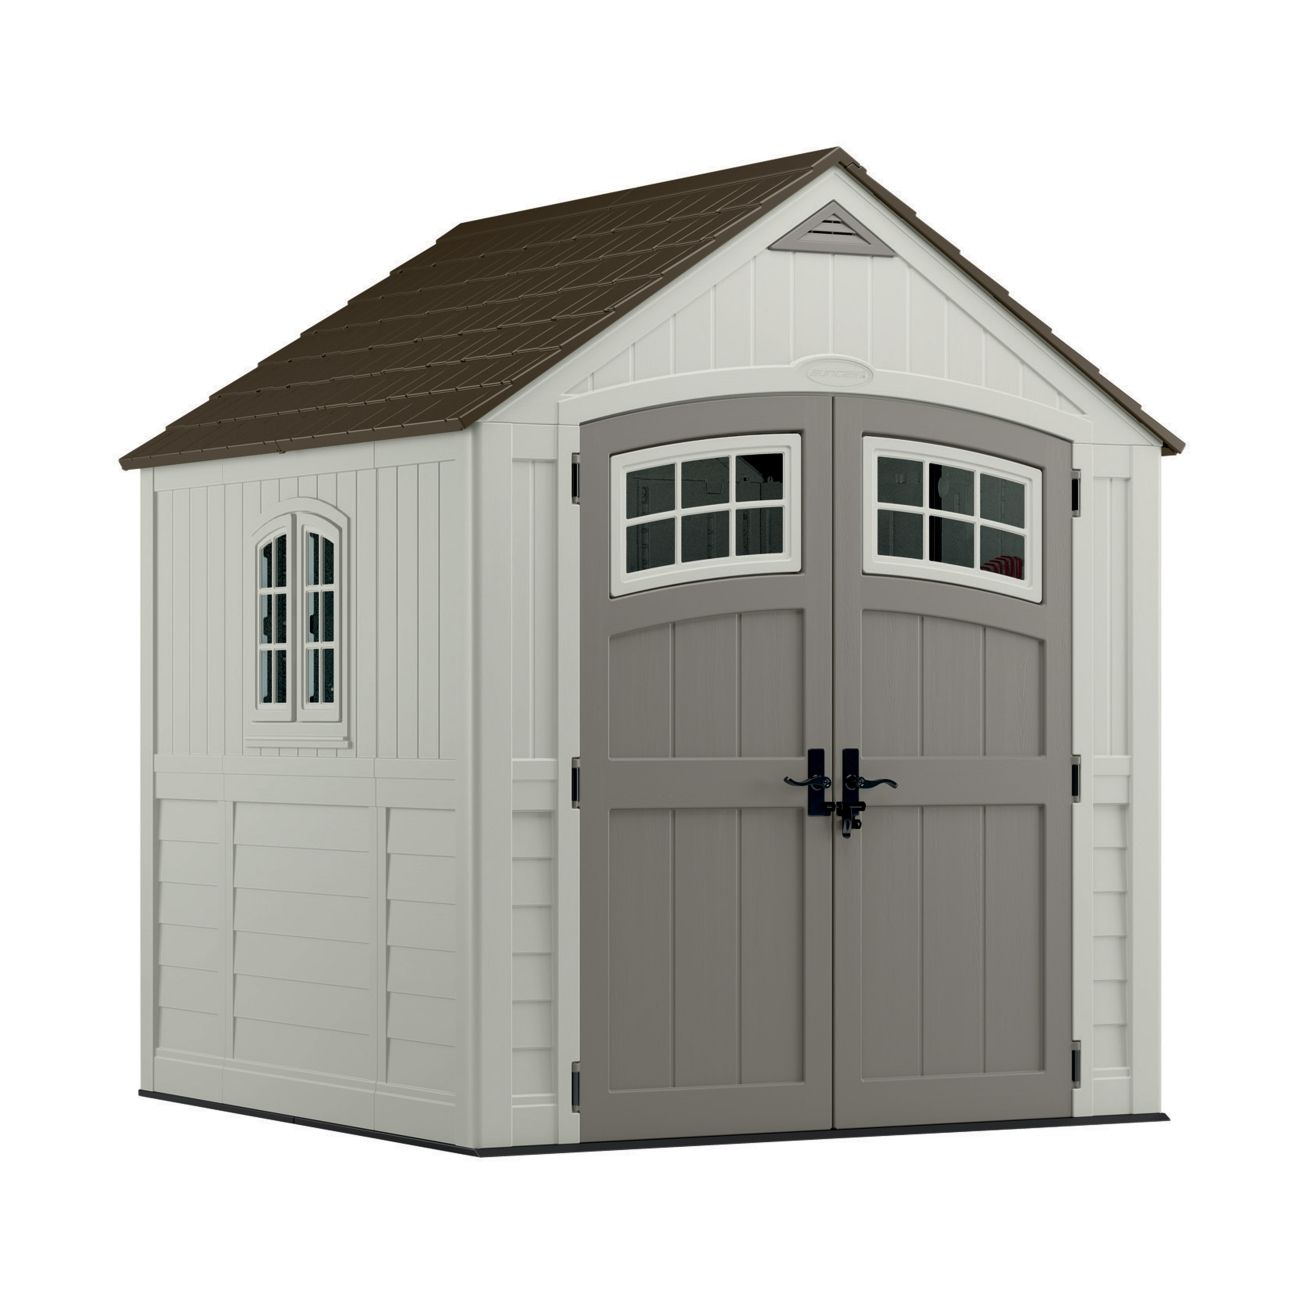 Suncast 7ft X 7ft Resin Walk In Shed Bms7790 Storage